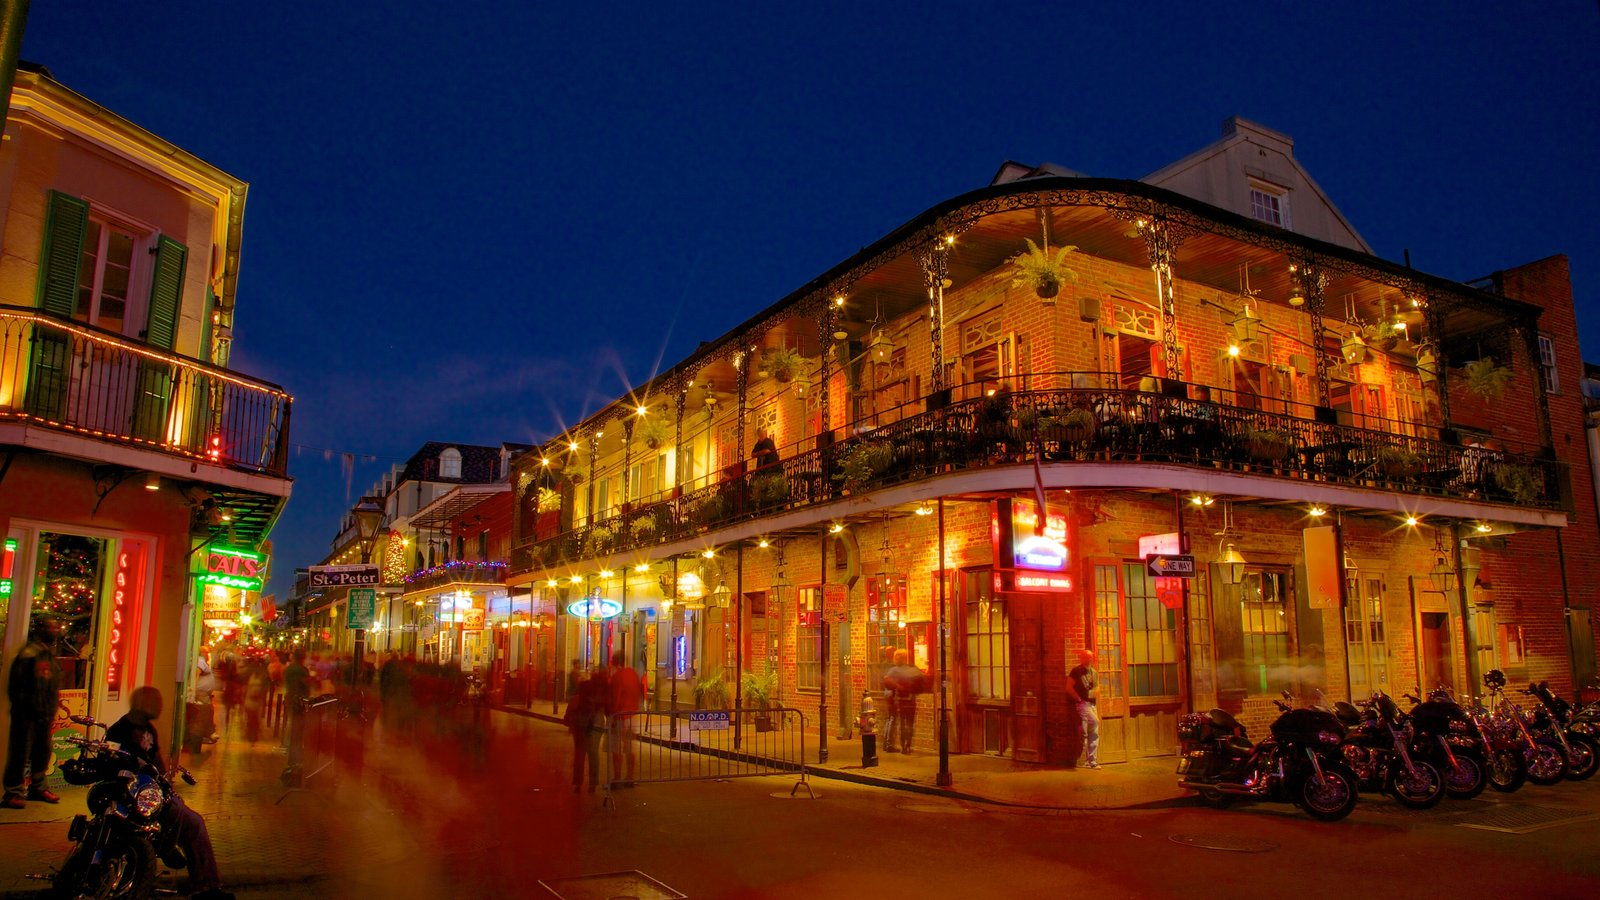 French Quarter which includes heritage architecture, night scenes and a city